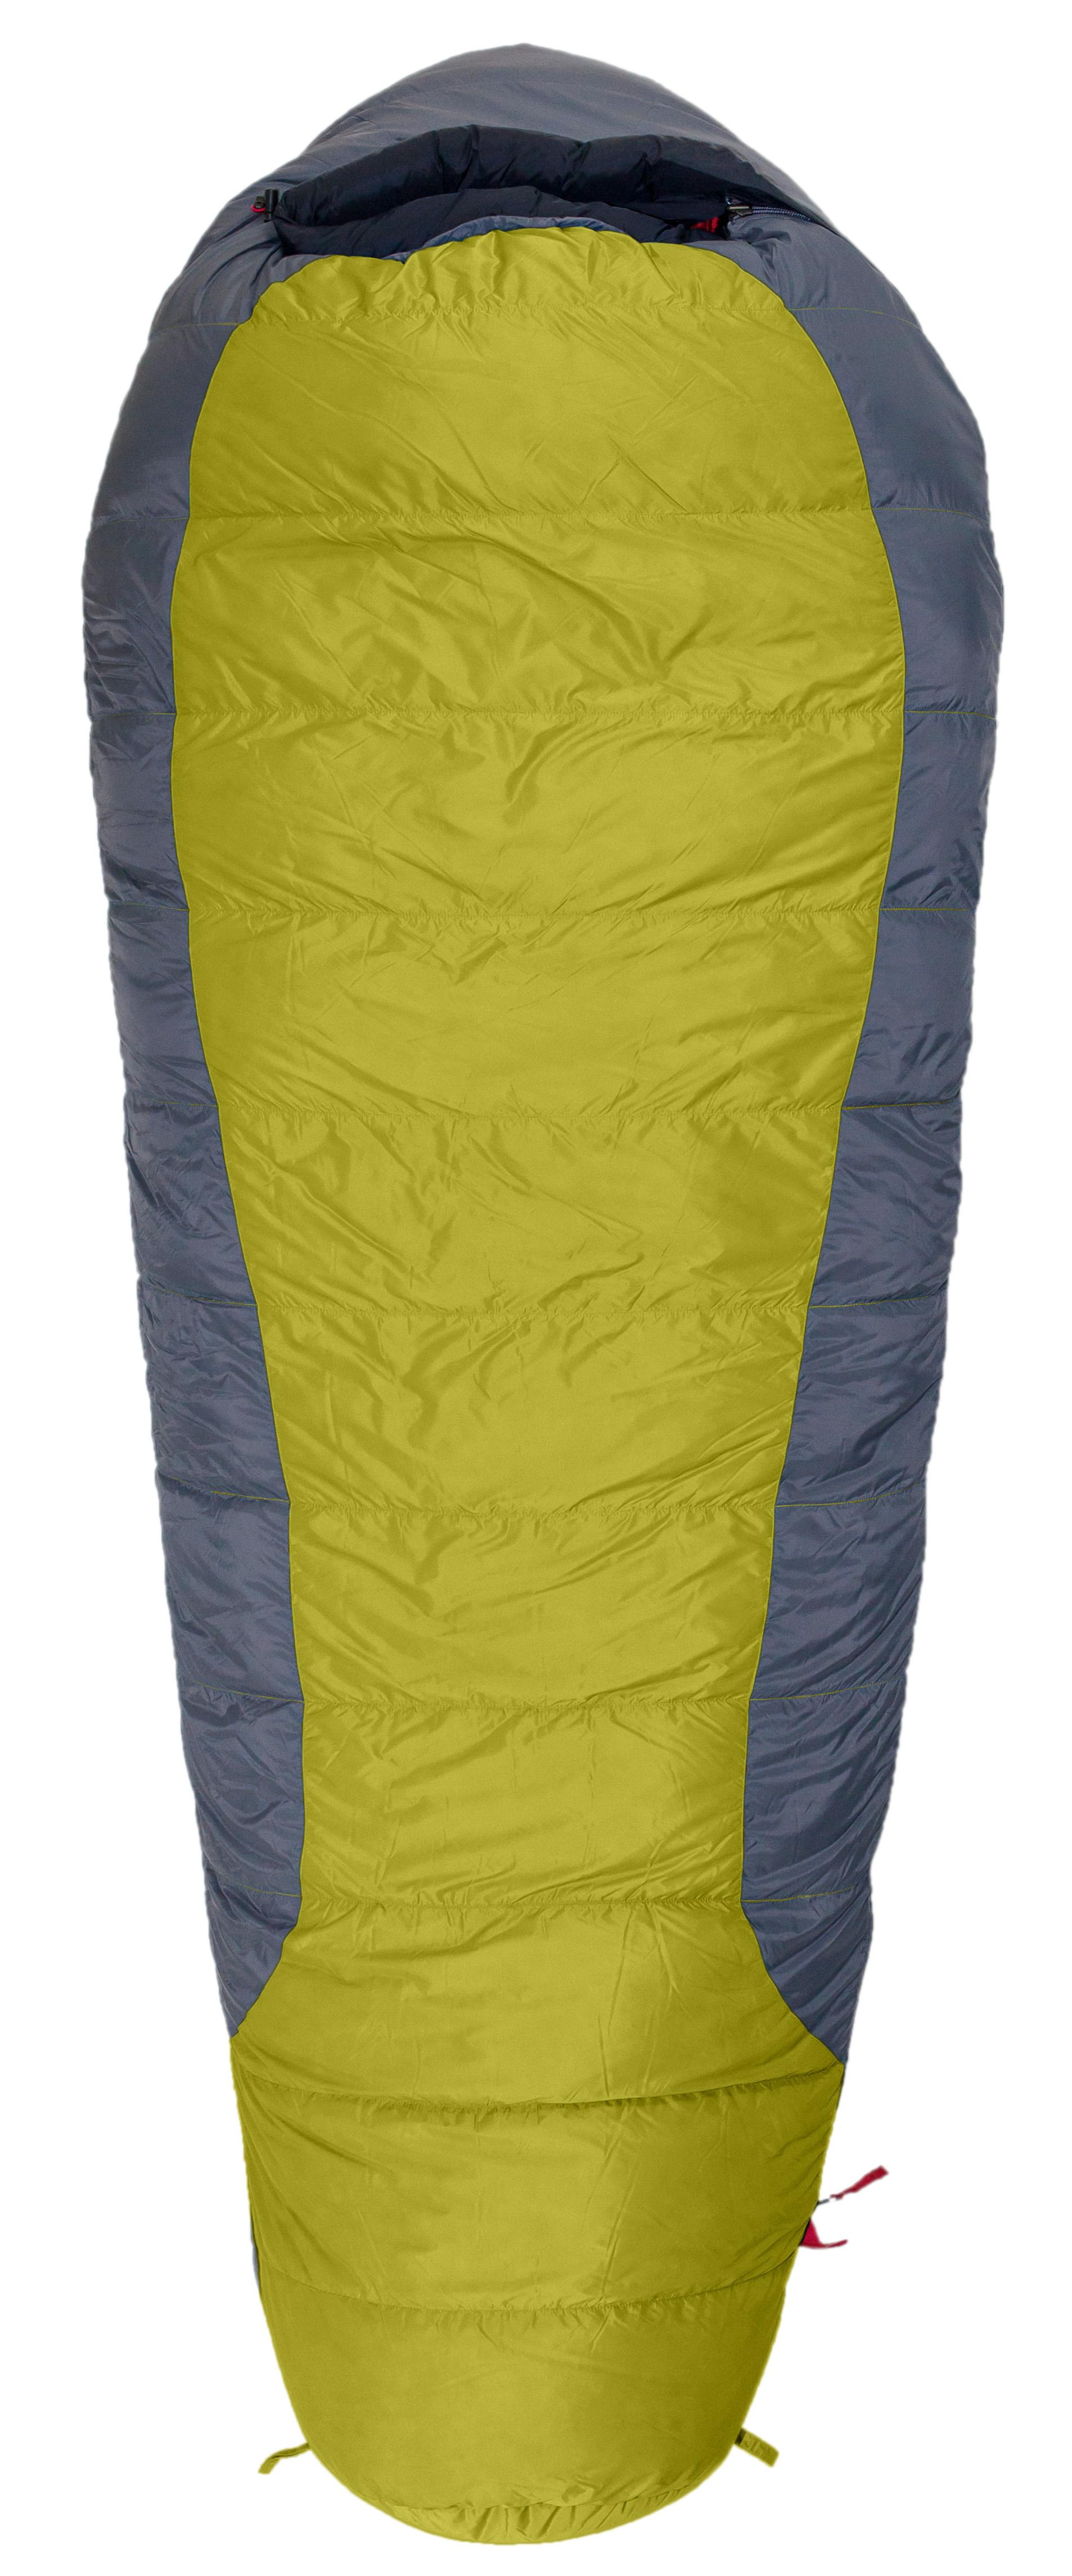 Warmpeace Sac de dormit puf Warmpeace Viking 1200